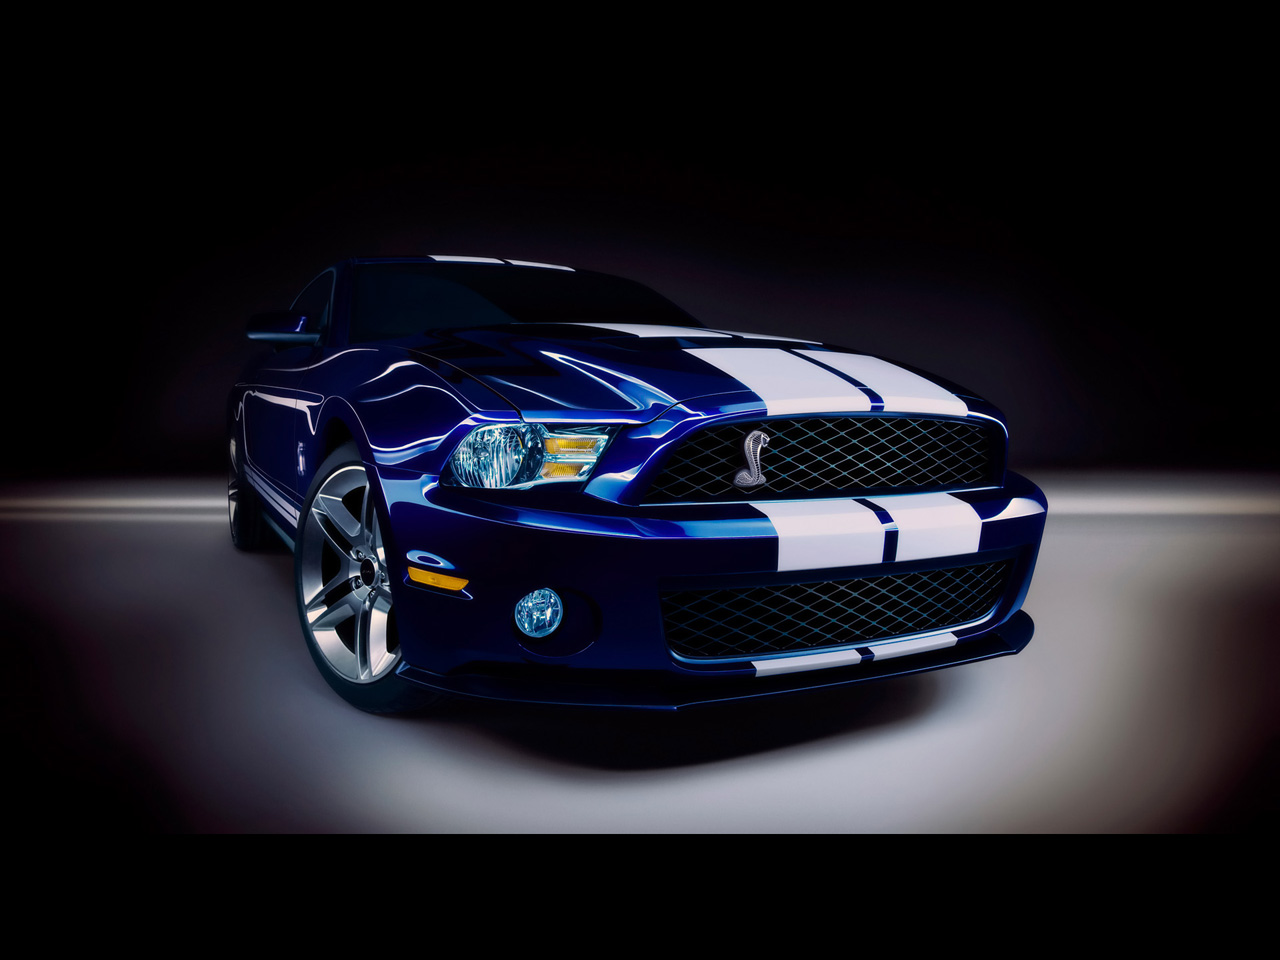 Mustang Shelby GT 500 Desktop Wallpapers FREE on Latorocom 1280x960